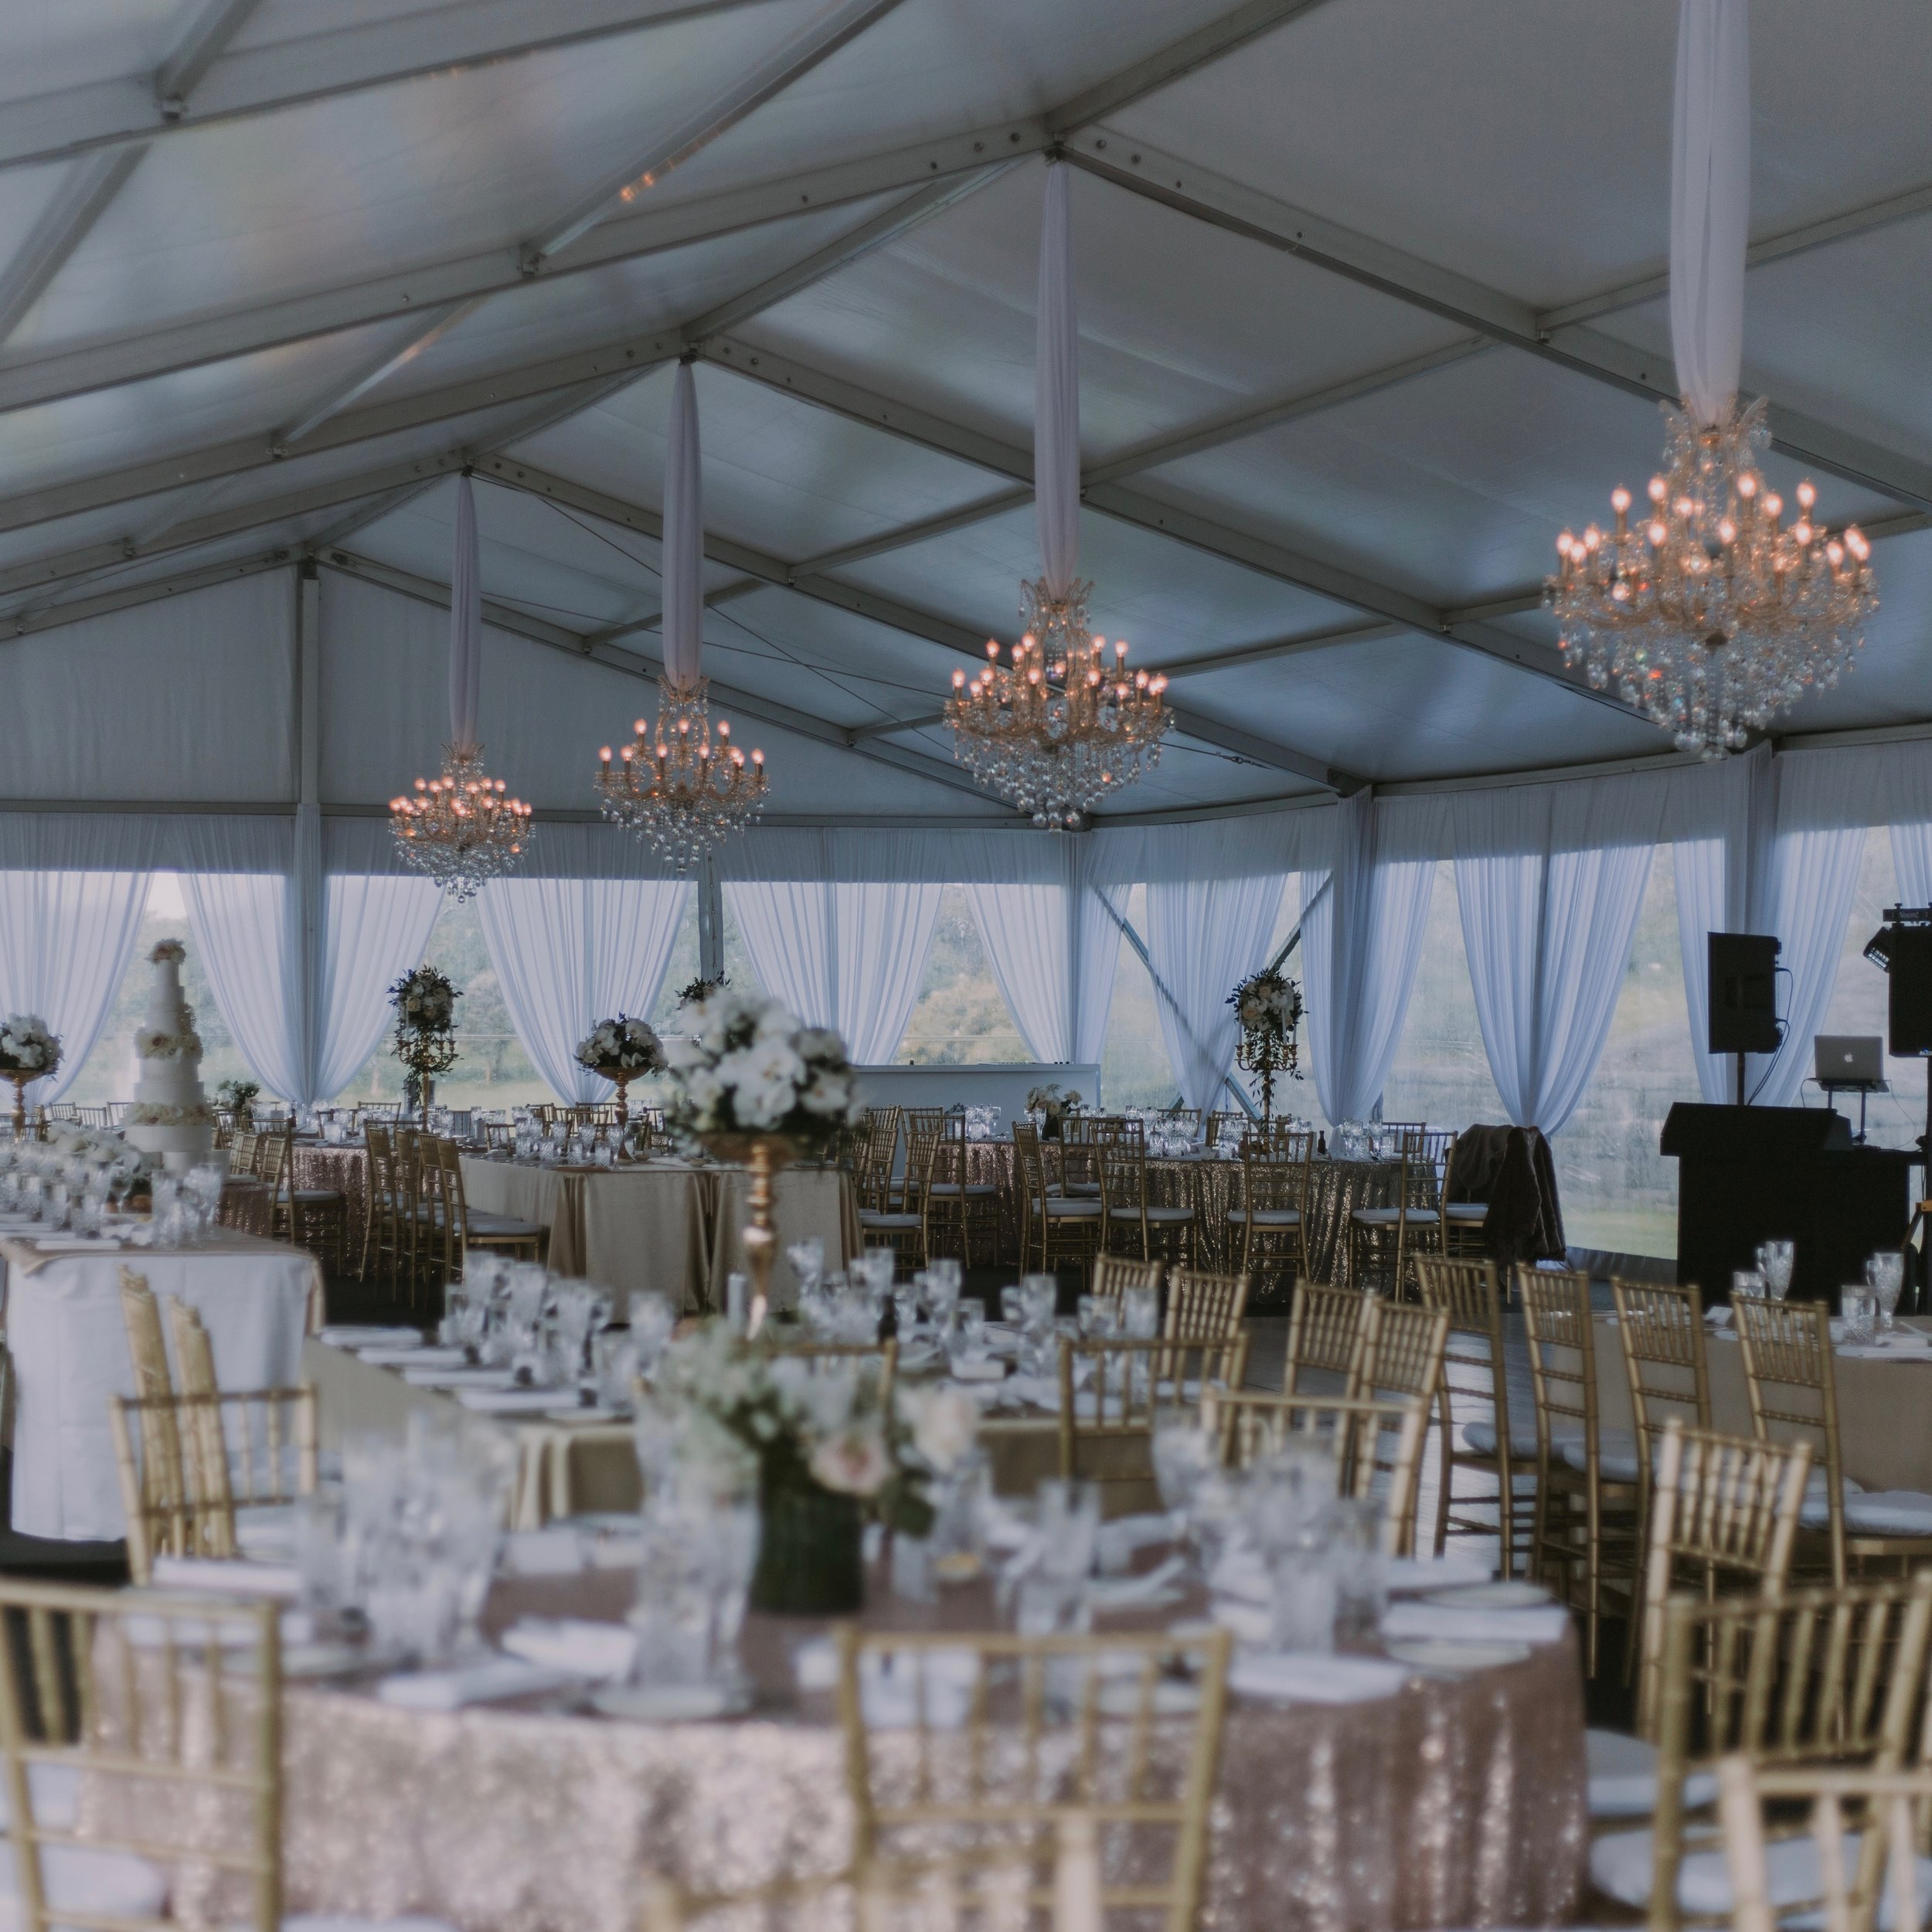 Marquee wedding   Thank you so much for the magnificent job you did with the drapery and chandelier instalments for our wedding. Our reception marquee was beautiful, you brought the class and elegance we had hoped for. I had a vision for what I wanted and you far exceeded my expectations.